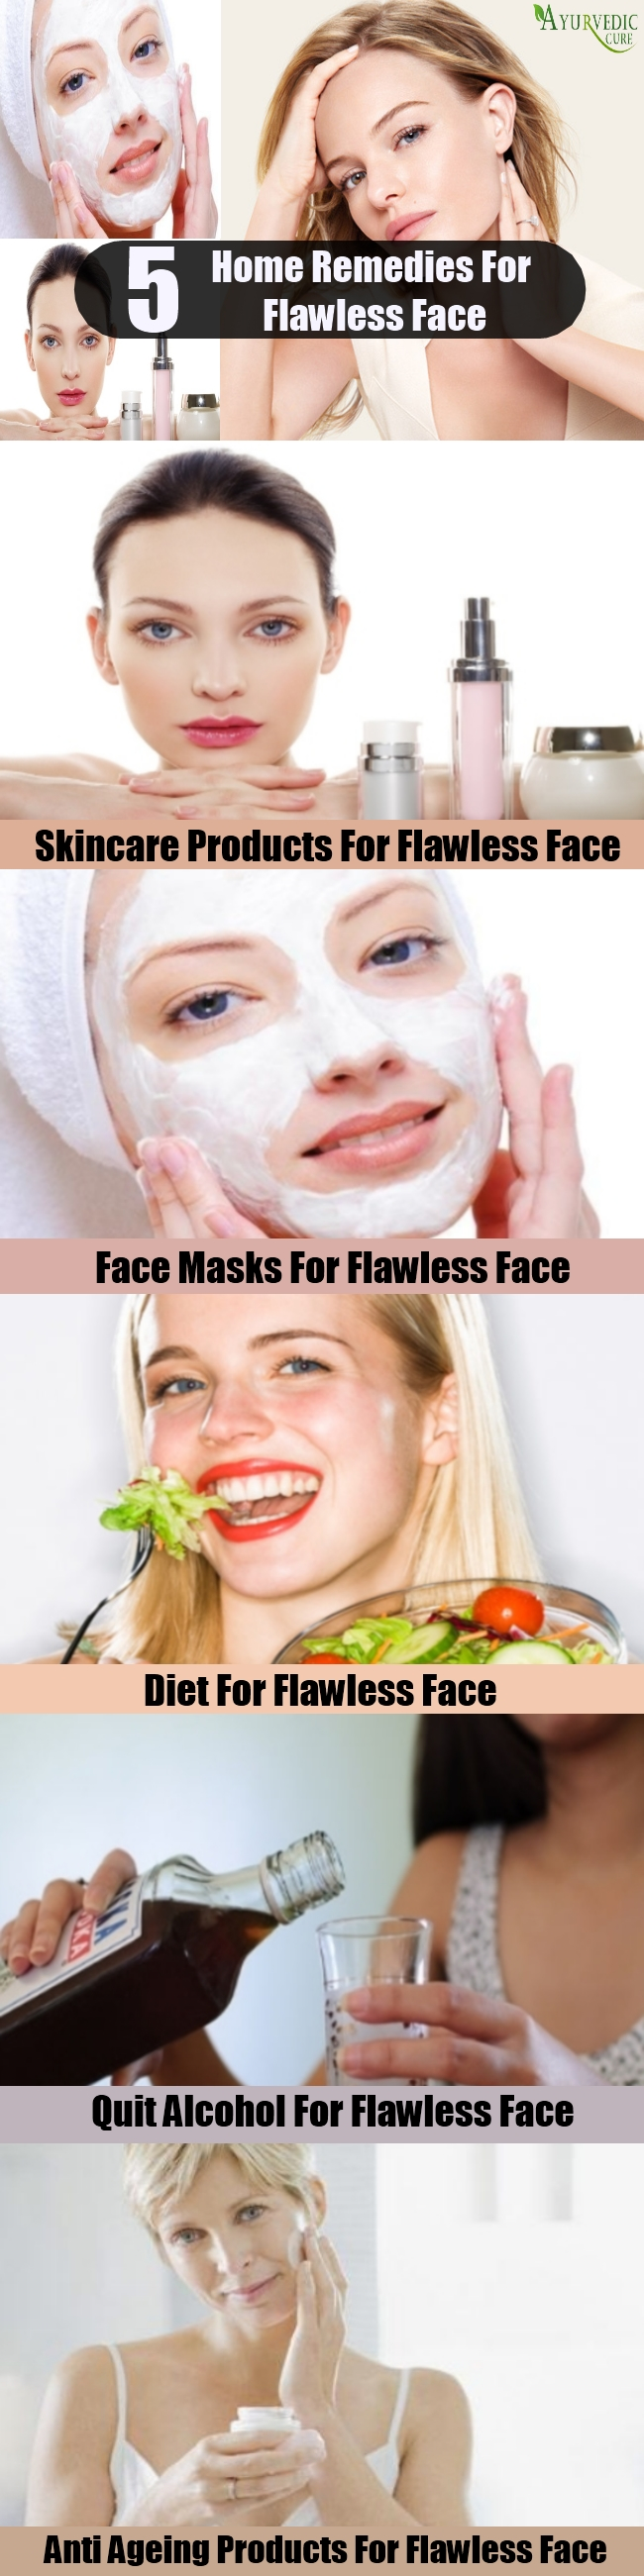 5 Home Remedies For Flawless Face